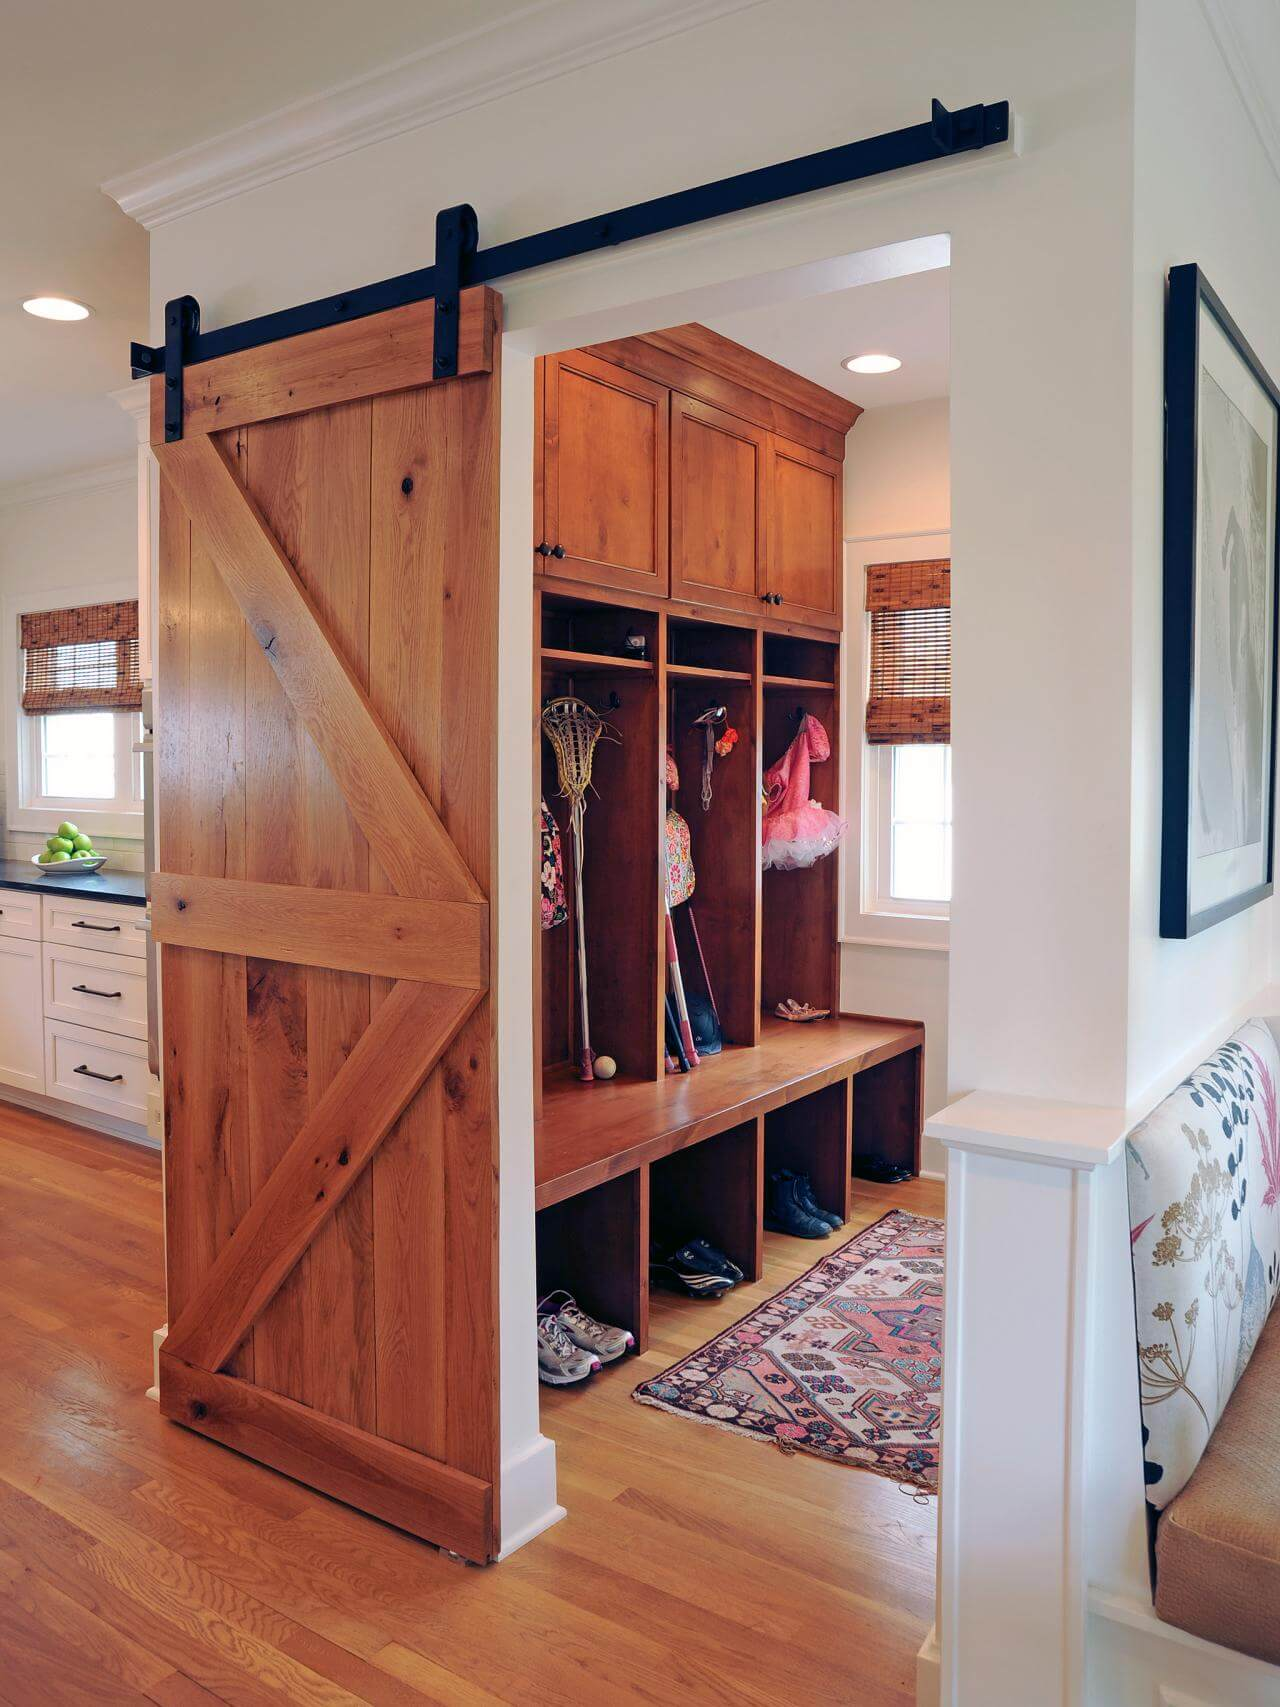 home plans with mudroom 45 superb mudroom entryway design ideas with benches and storage lockers pictures home 5616